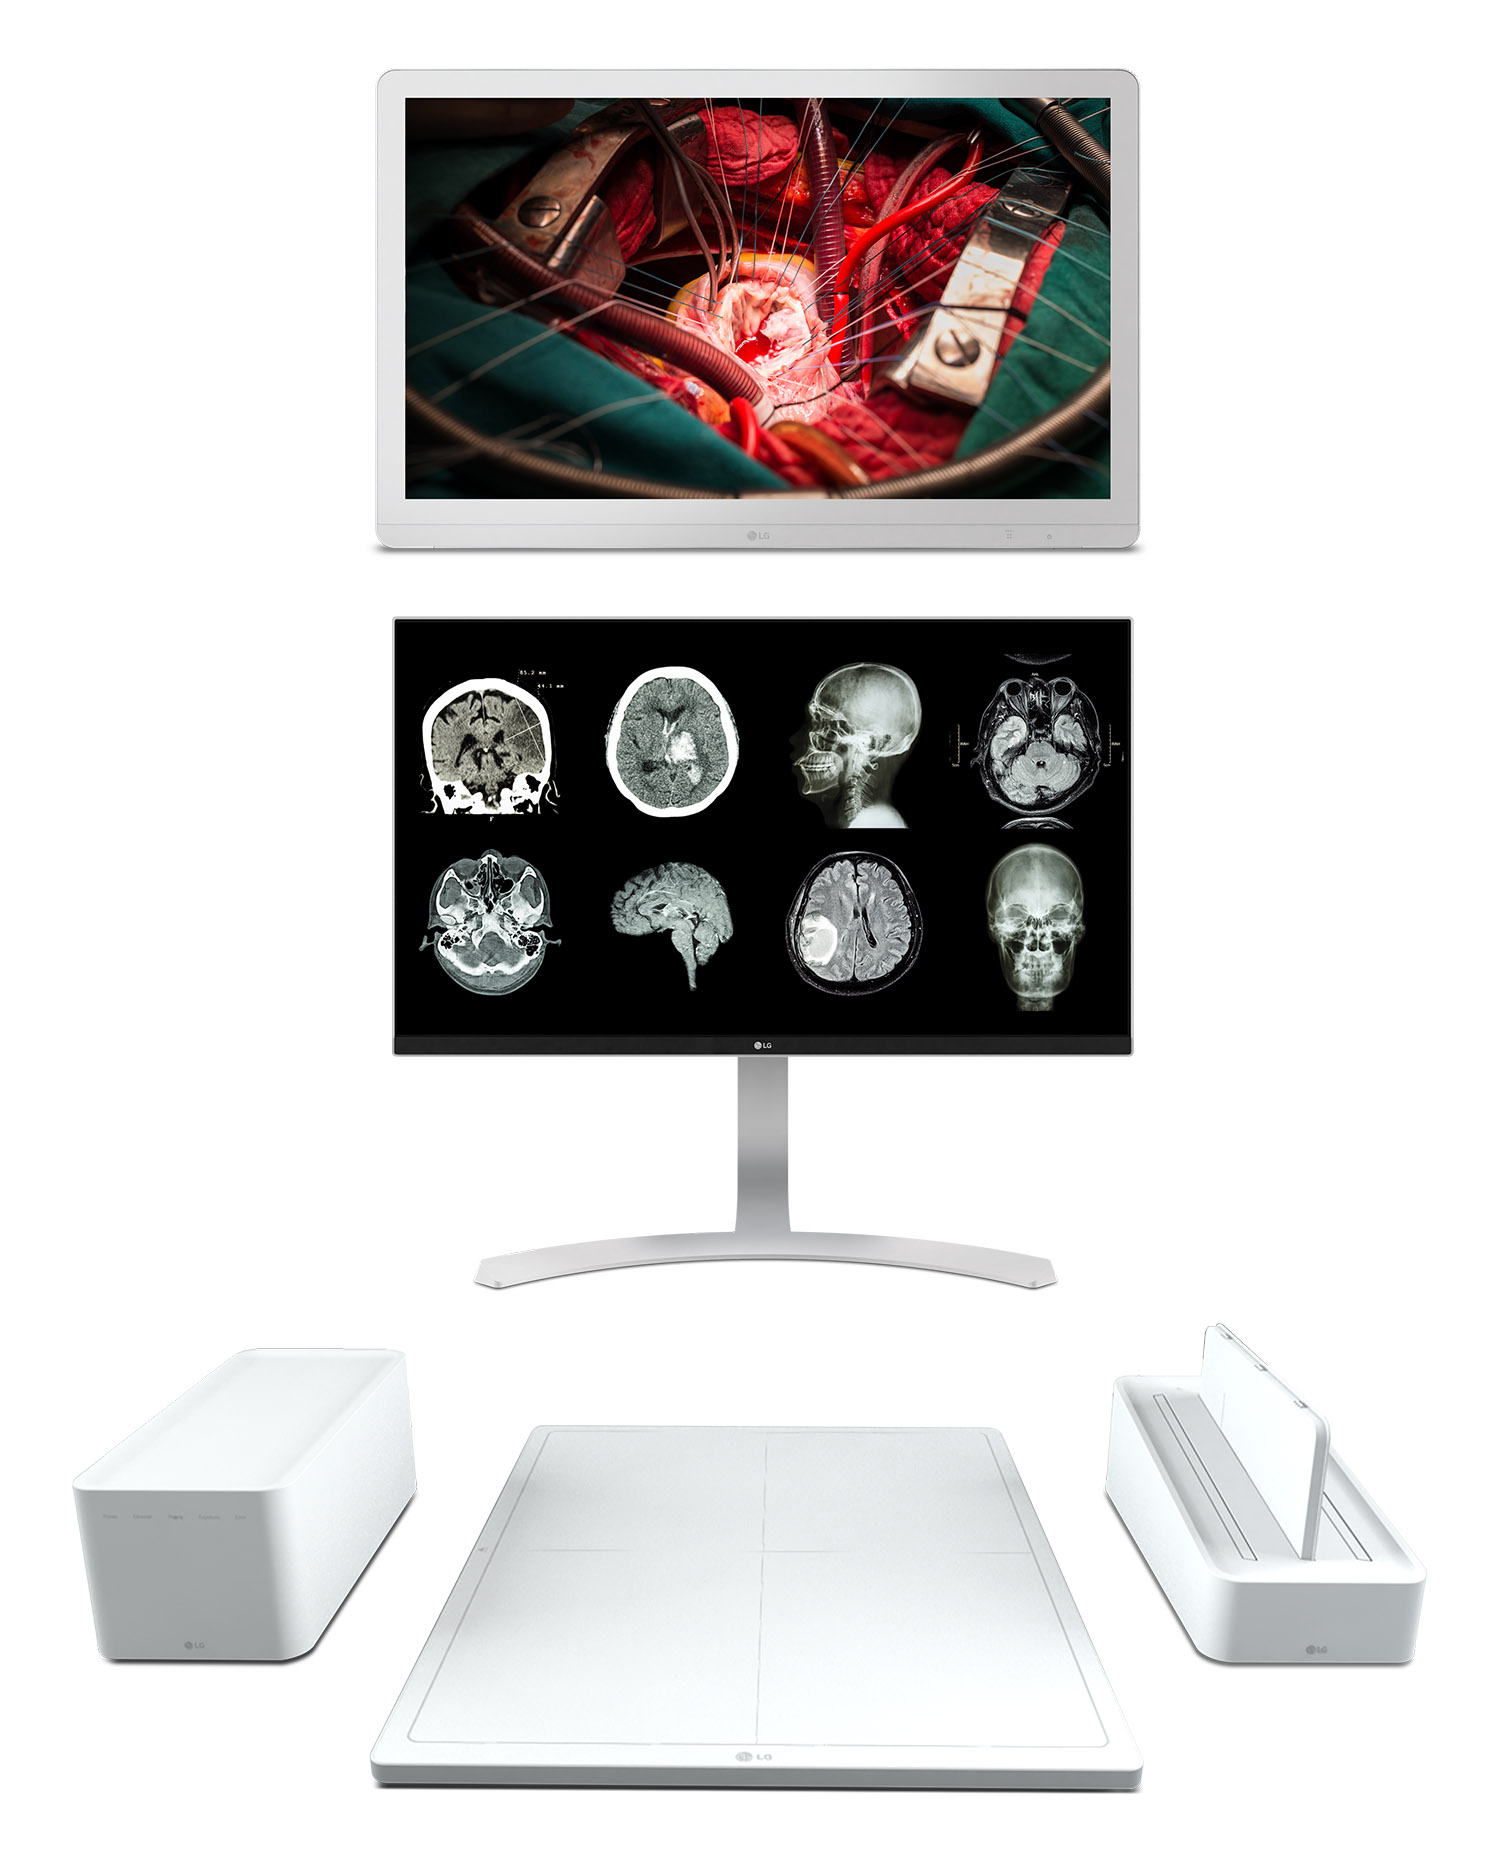 Surgical monitor_Clinical Review monitor_DXD_1.jpg